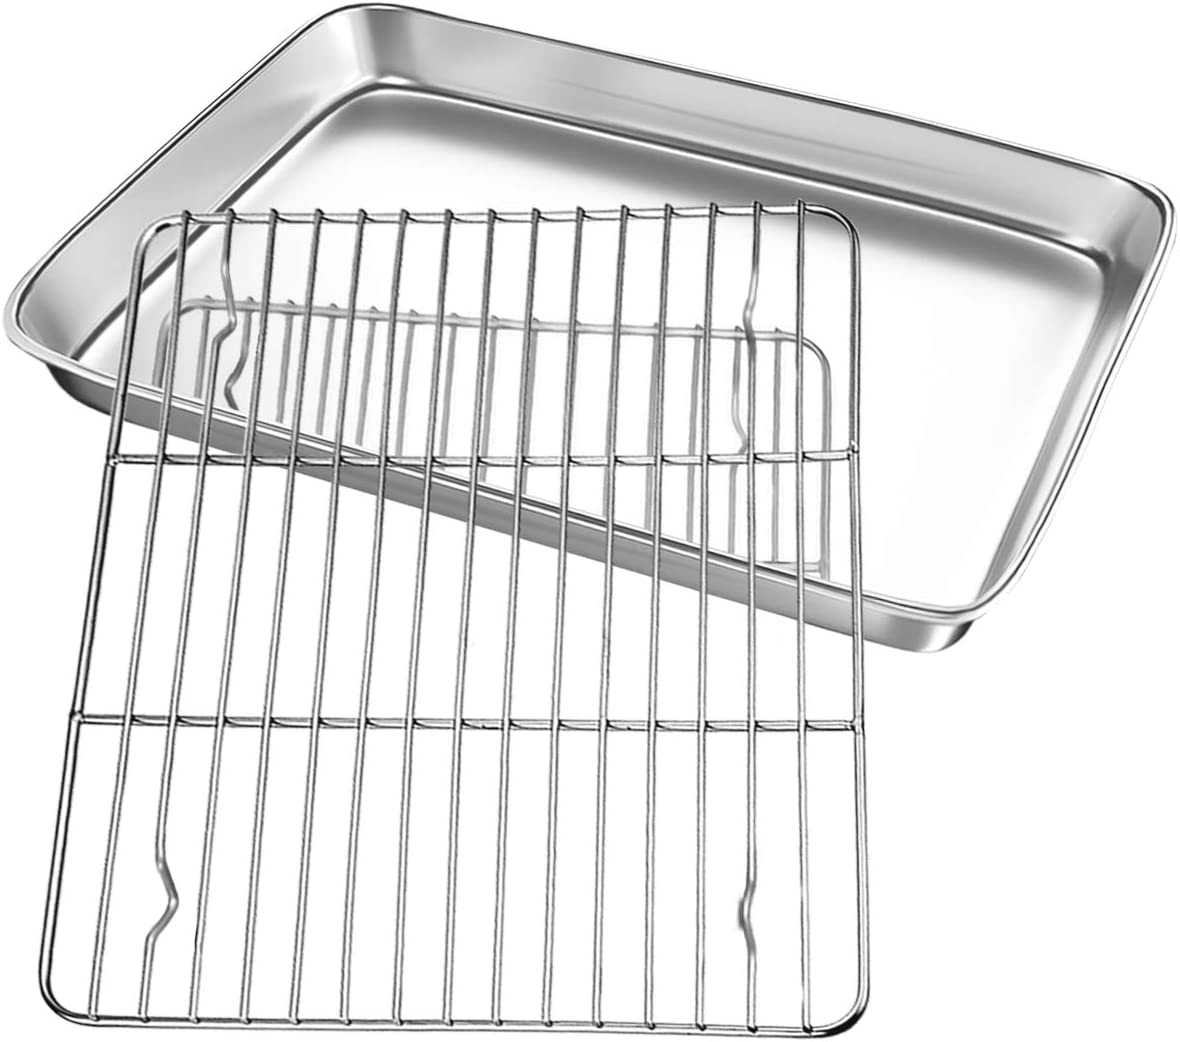 FODCOKI Toaster Oven Pans with Cooling Rack, 12.4 x 9.7 x 1 inch Stainless Steel Cookie Sheet, Baking Tray Bakeware Replacement Set, Sturdy Heavy Mirror Finish Dishwasher Safe